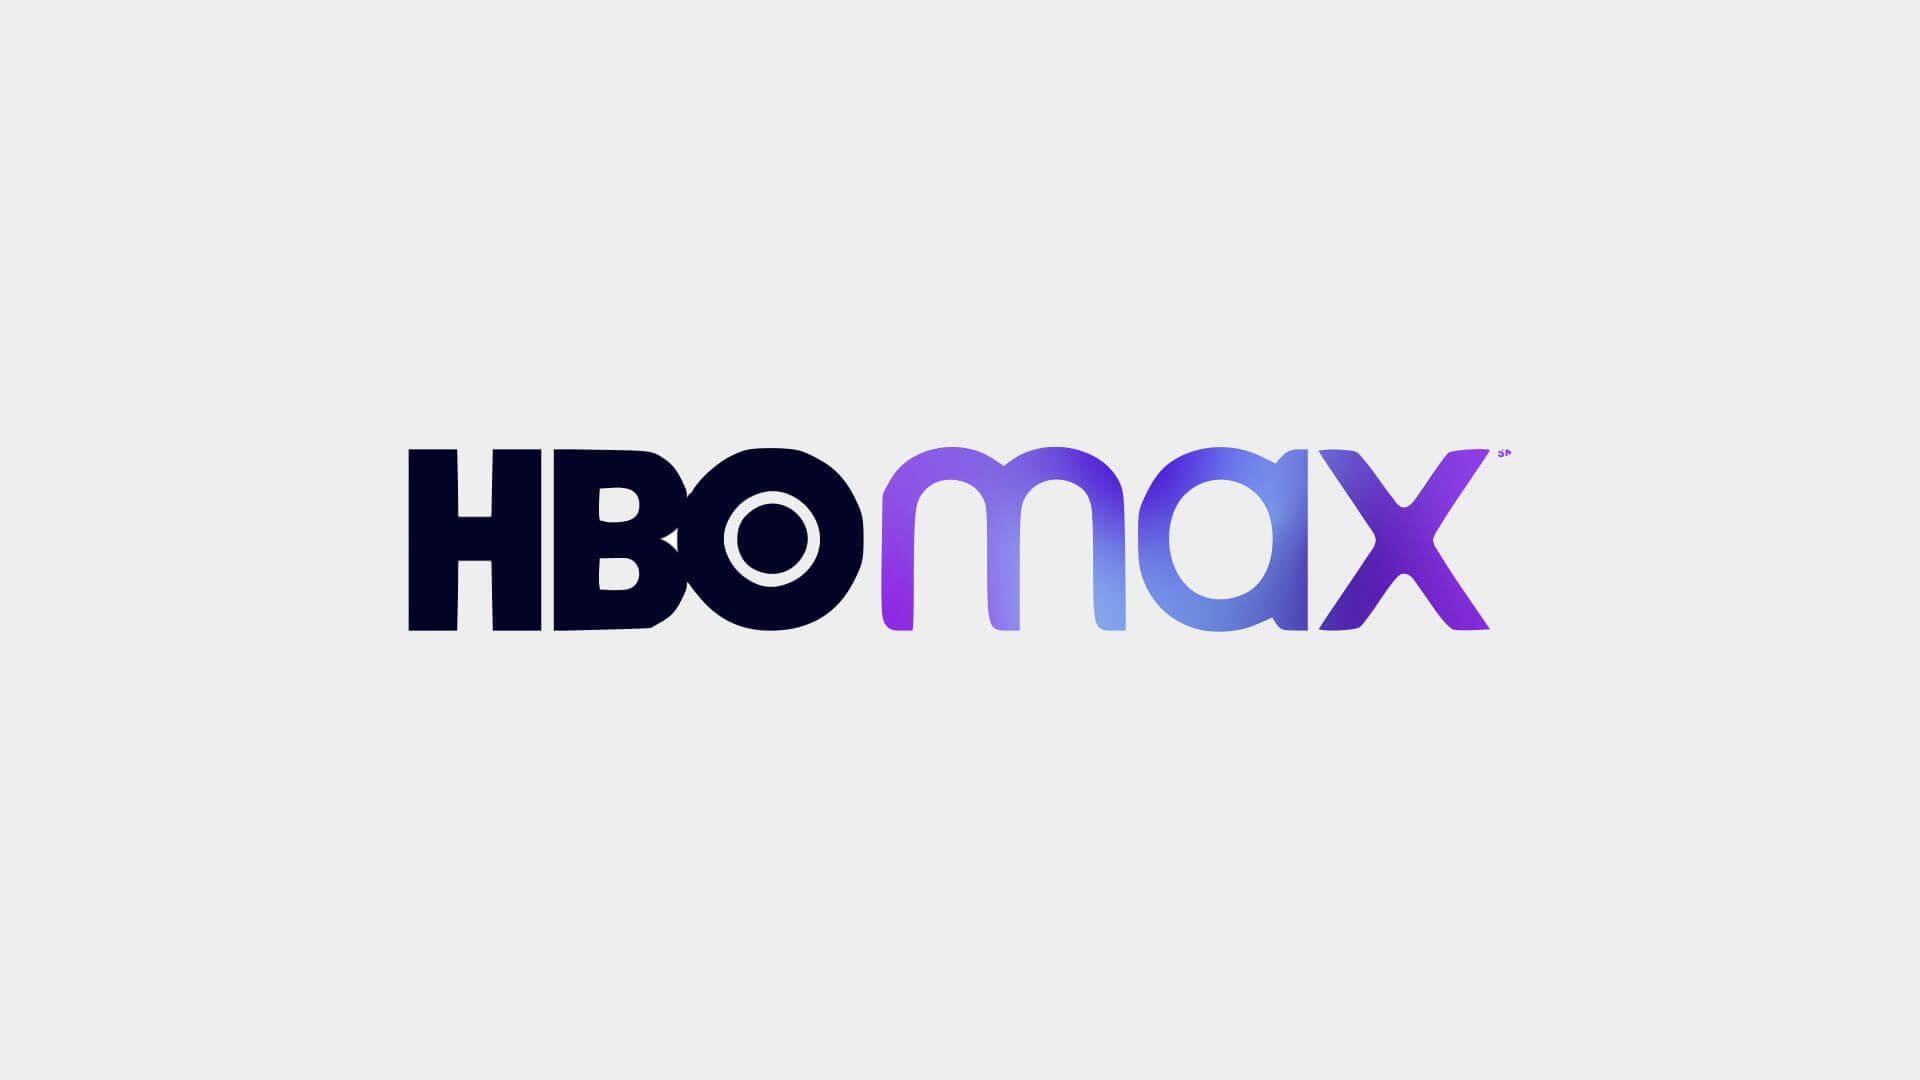 MK Movie Will be Removed From HBO Max One Month After the Premiere